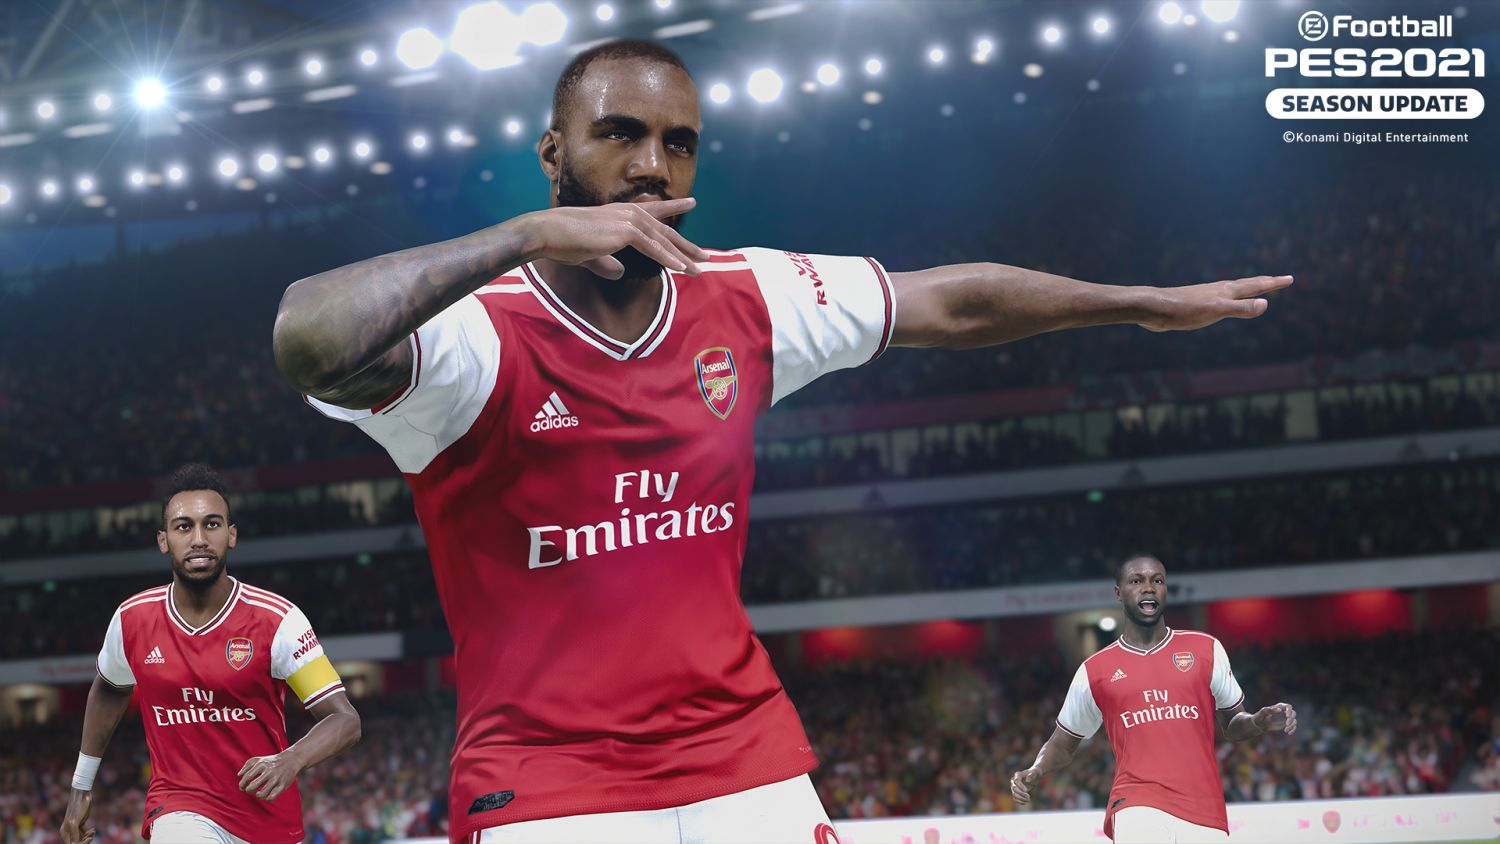 Konami Confirms PES 2021 Will Be a PES 2020 'Season Update'